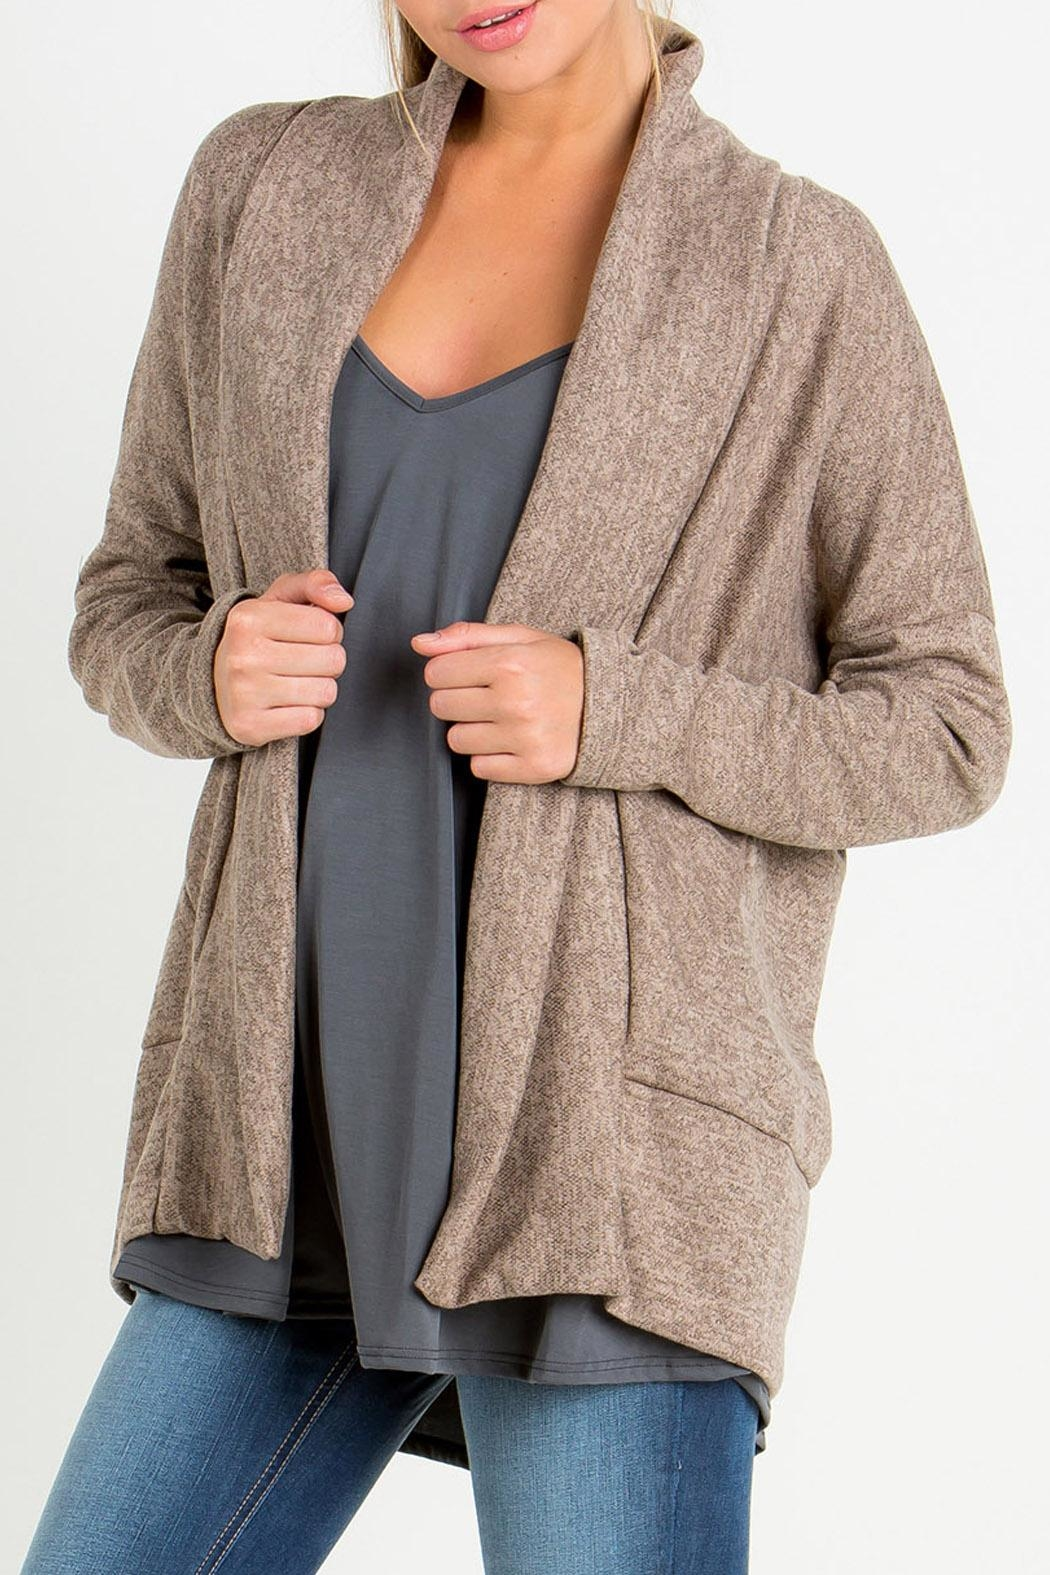 ee:some Mocha Cardigan - Front Cropped Image